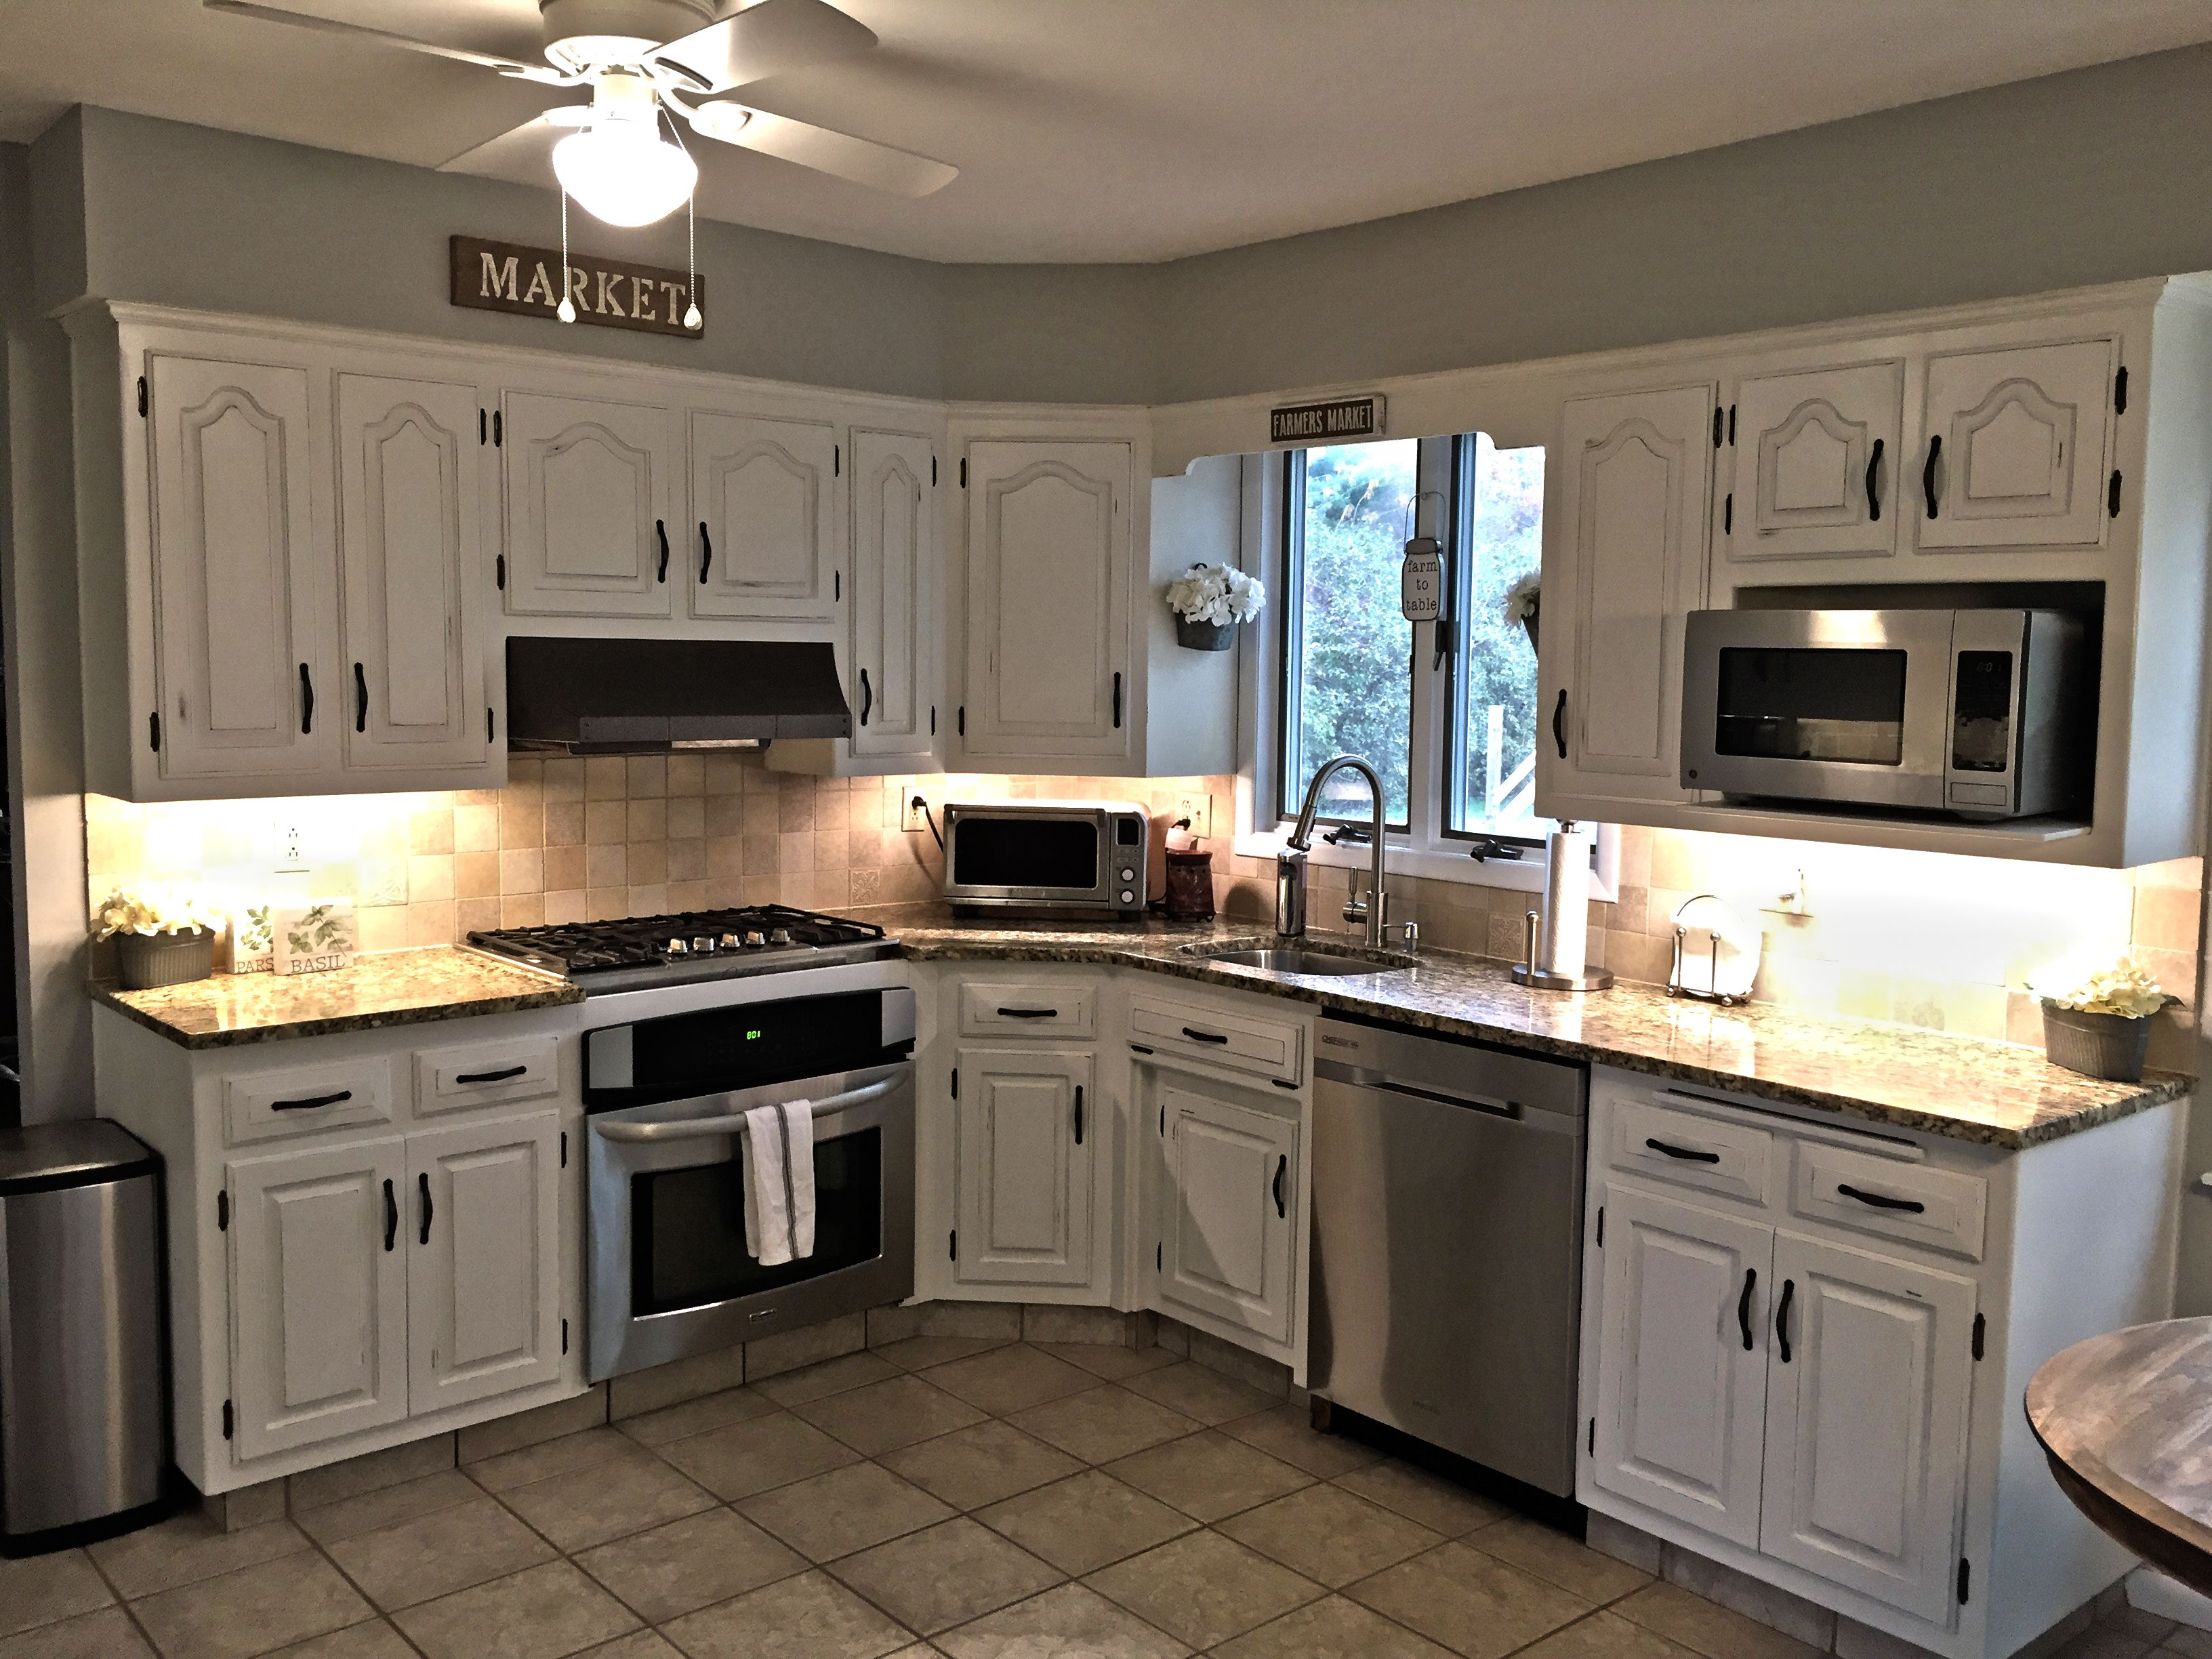 Completed Kitchen Chalk Paint Kitchen Cabinets Painting Kitchen Cabinets Chalk Paint Kitchen Cabinets White